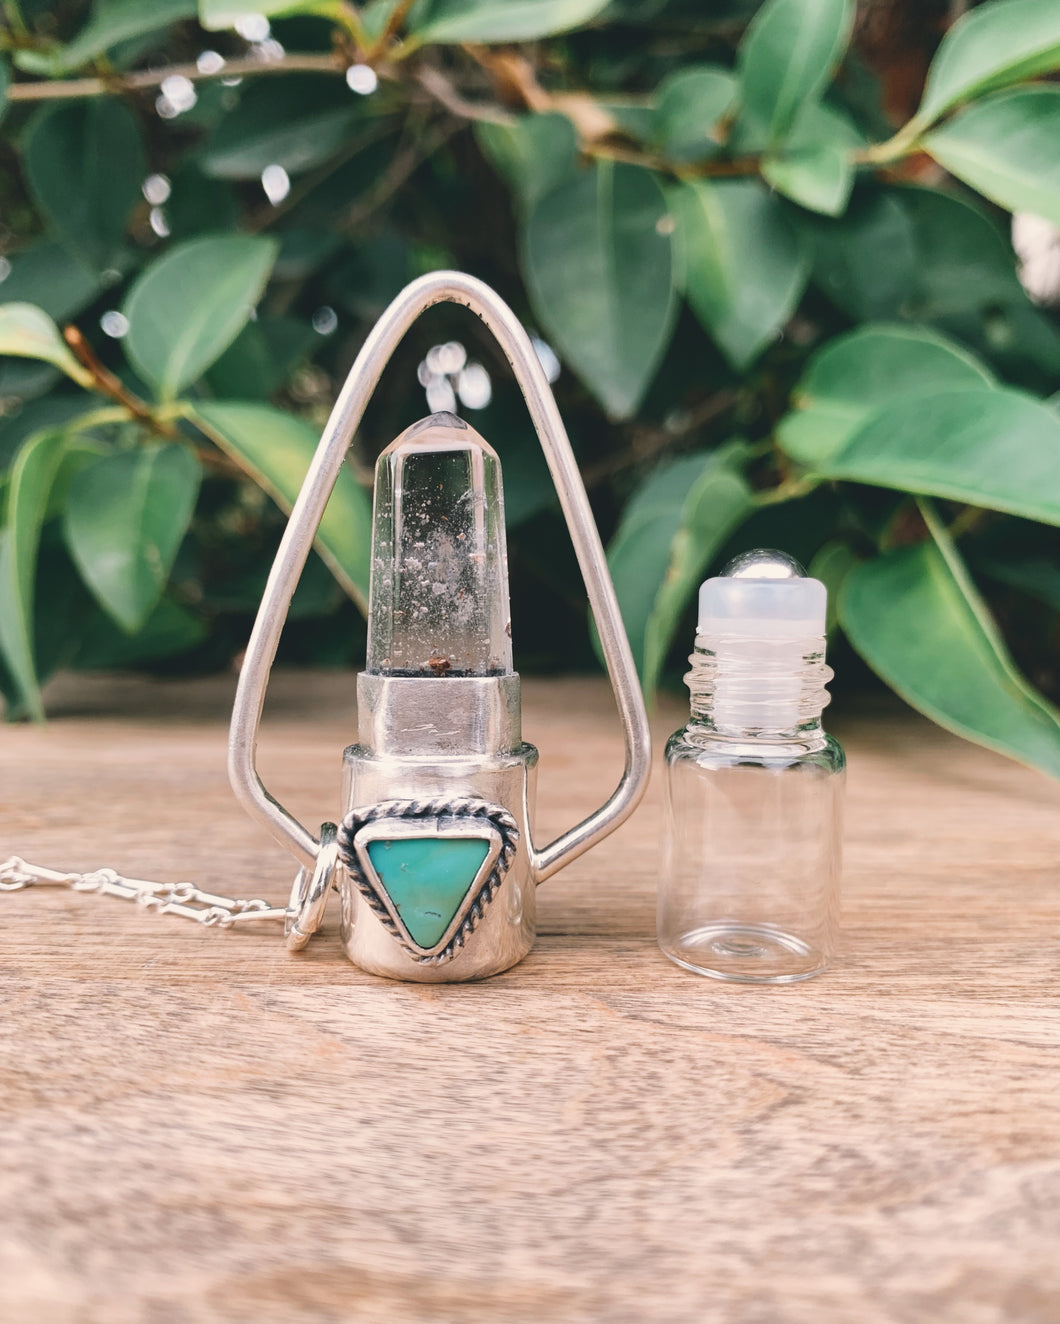 Geometric - Morenci Turquoise, Clear Quartz and Sterling Silver Rollerball Necklace